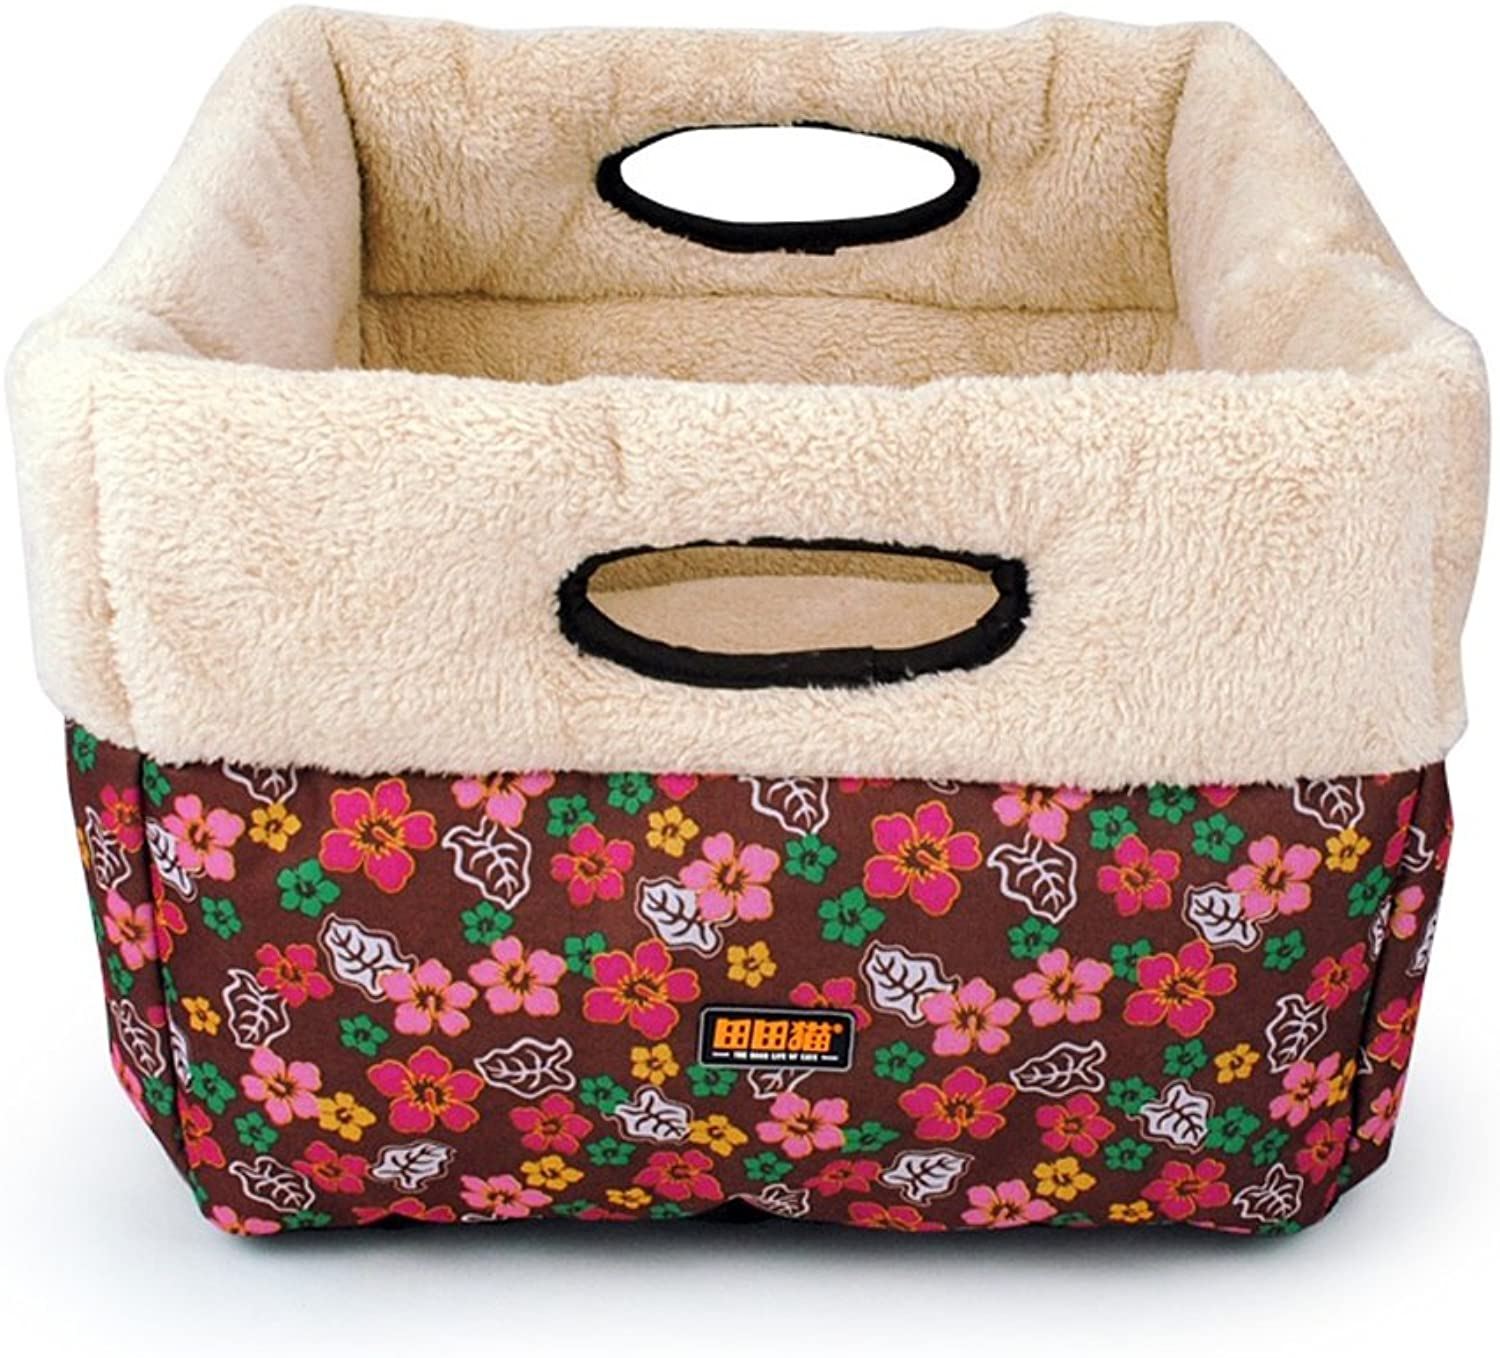 JUEJIDP Ethnic style floral canvas lamb cashmere square large size warm cat litter cat bed cat supplies